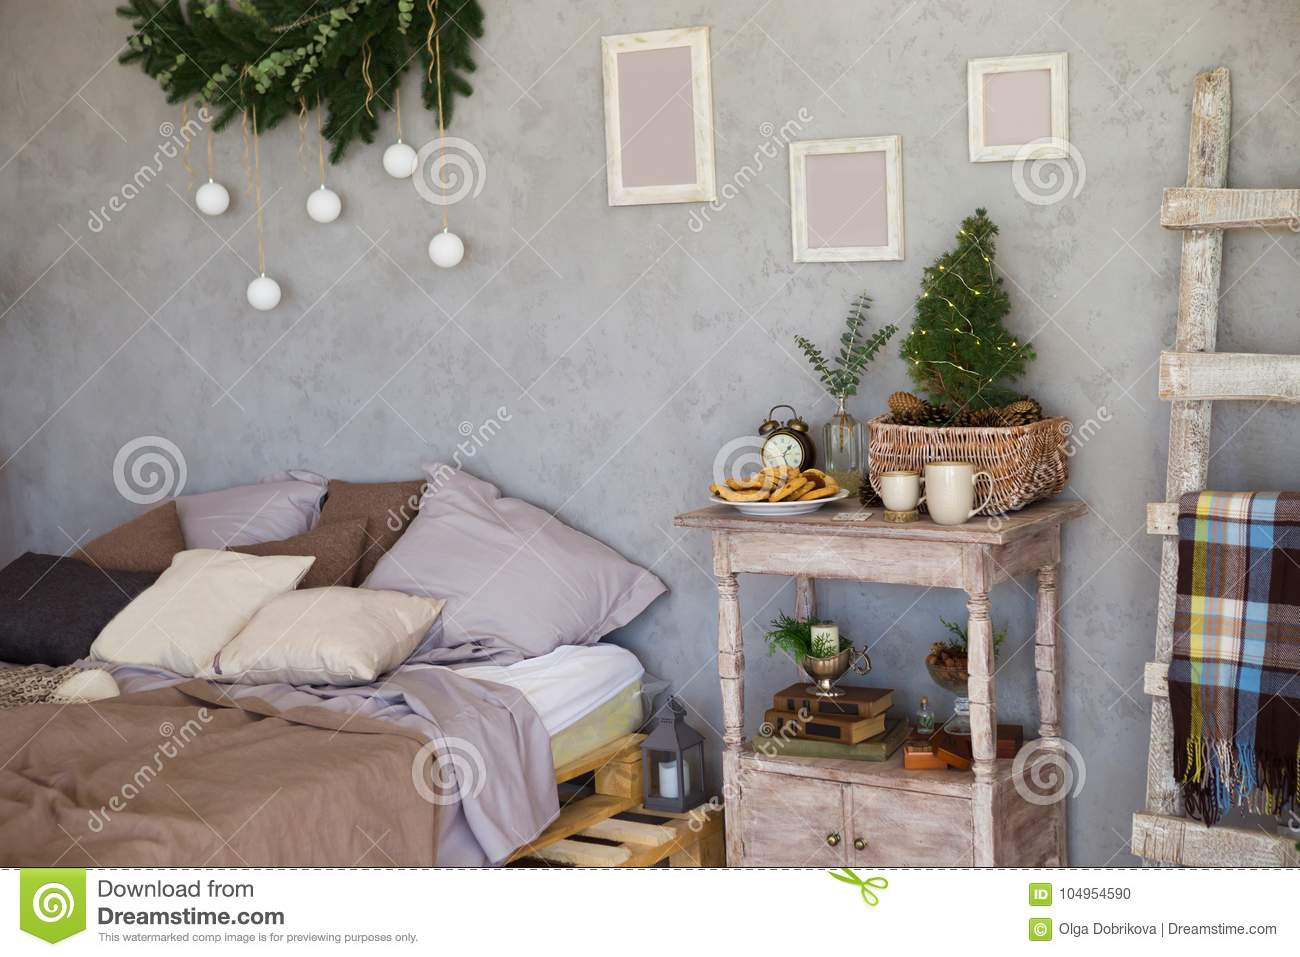 6b7cce6da050c Cozy Room, Sofa With Pillows And Nightstand Stock Photo - Image of ...